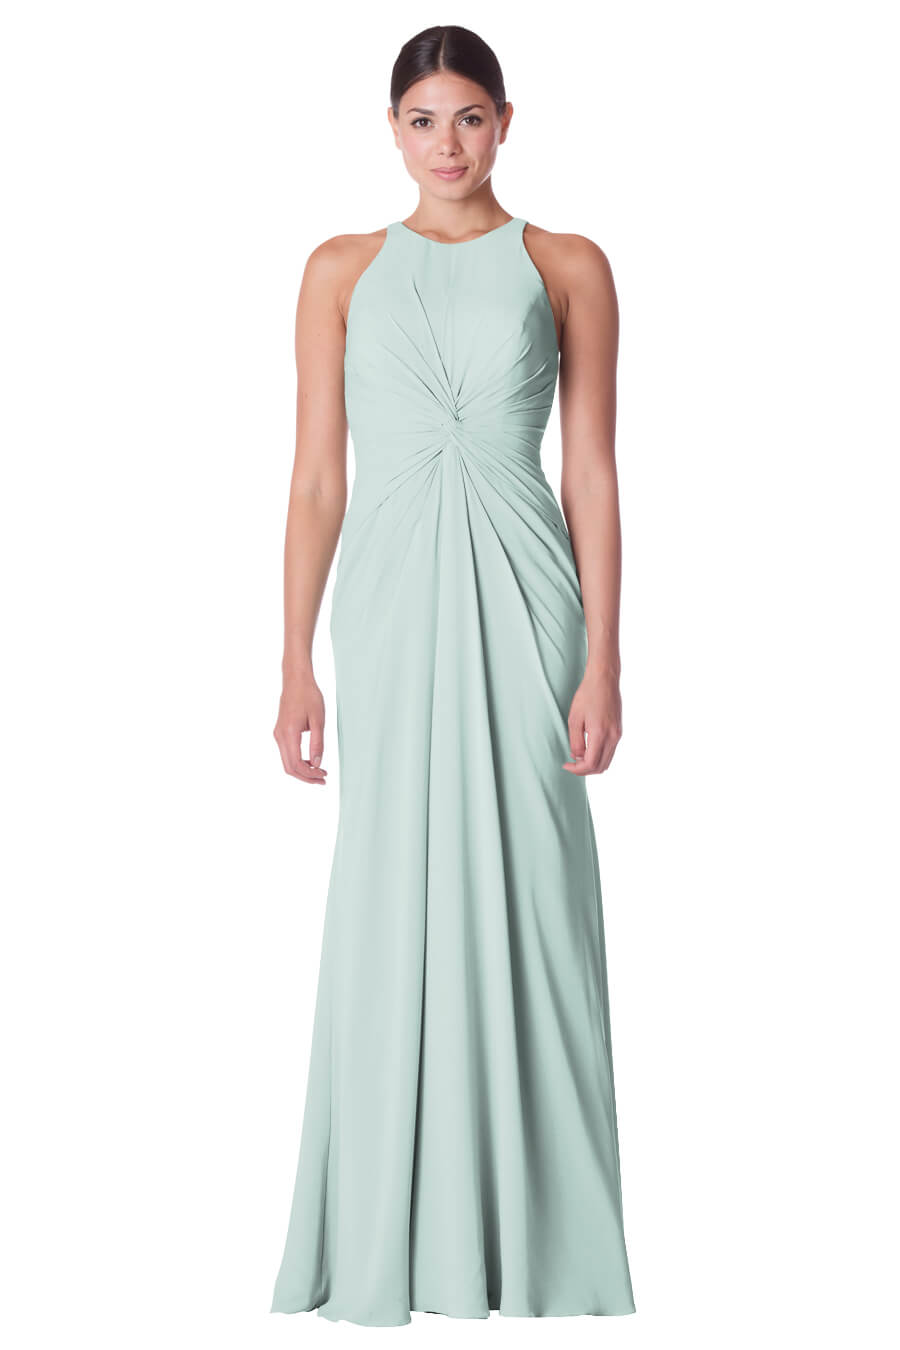 STYLE: 1781 | Bridesmaid Dresses, Evening Gowns & Flower Girl ...